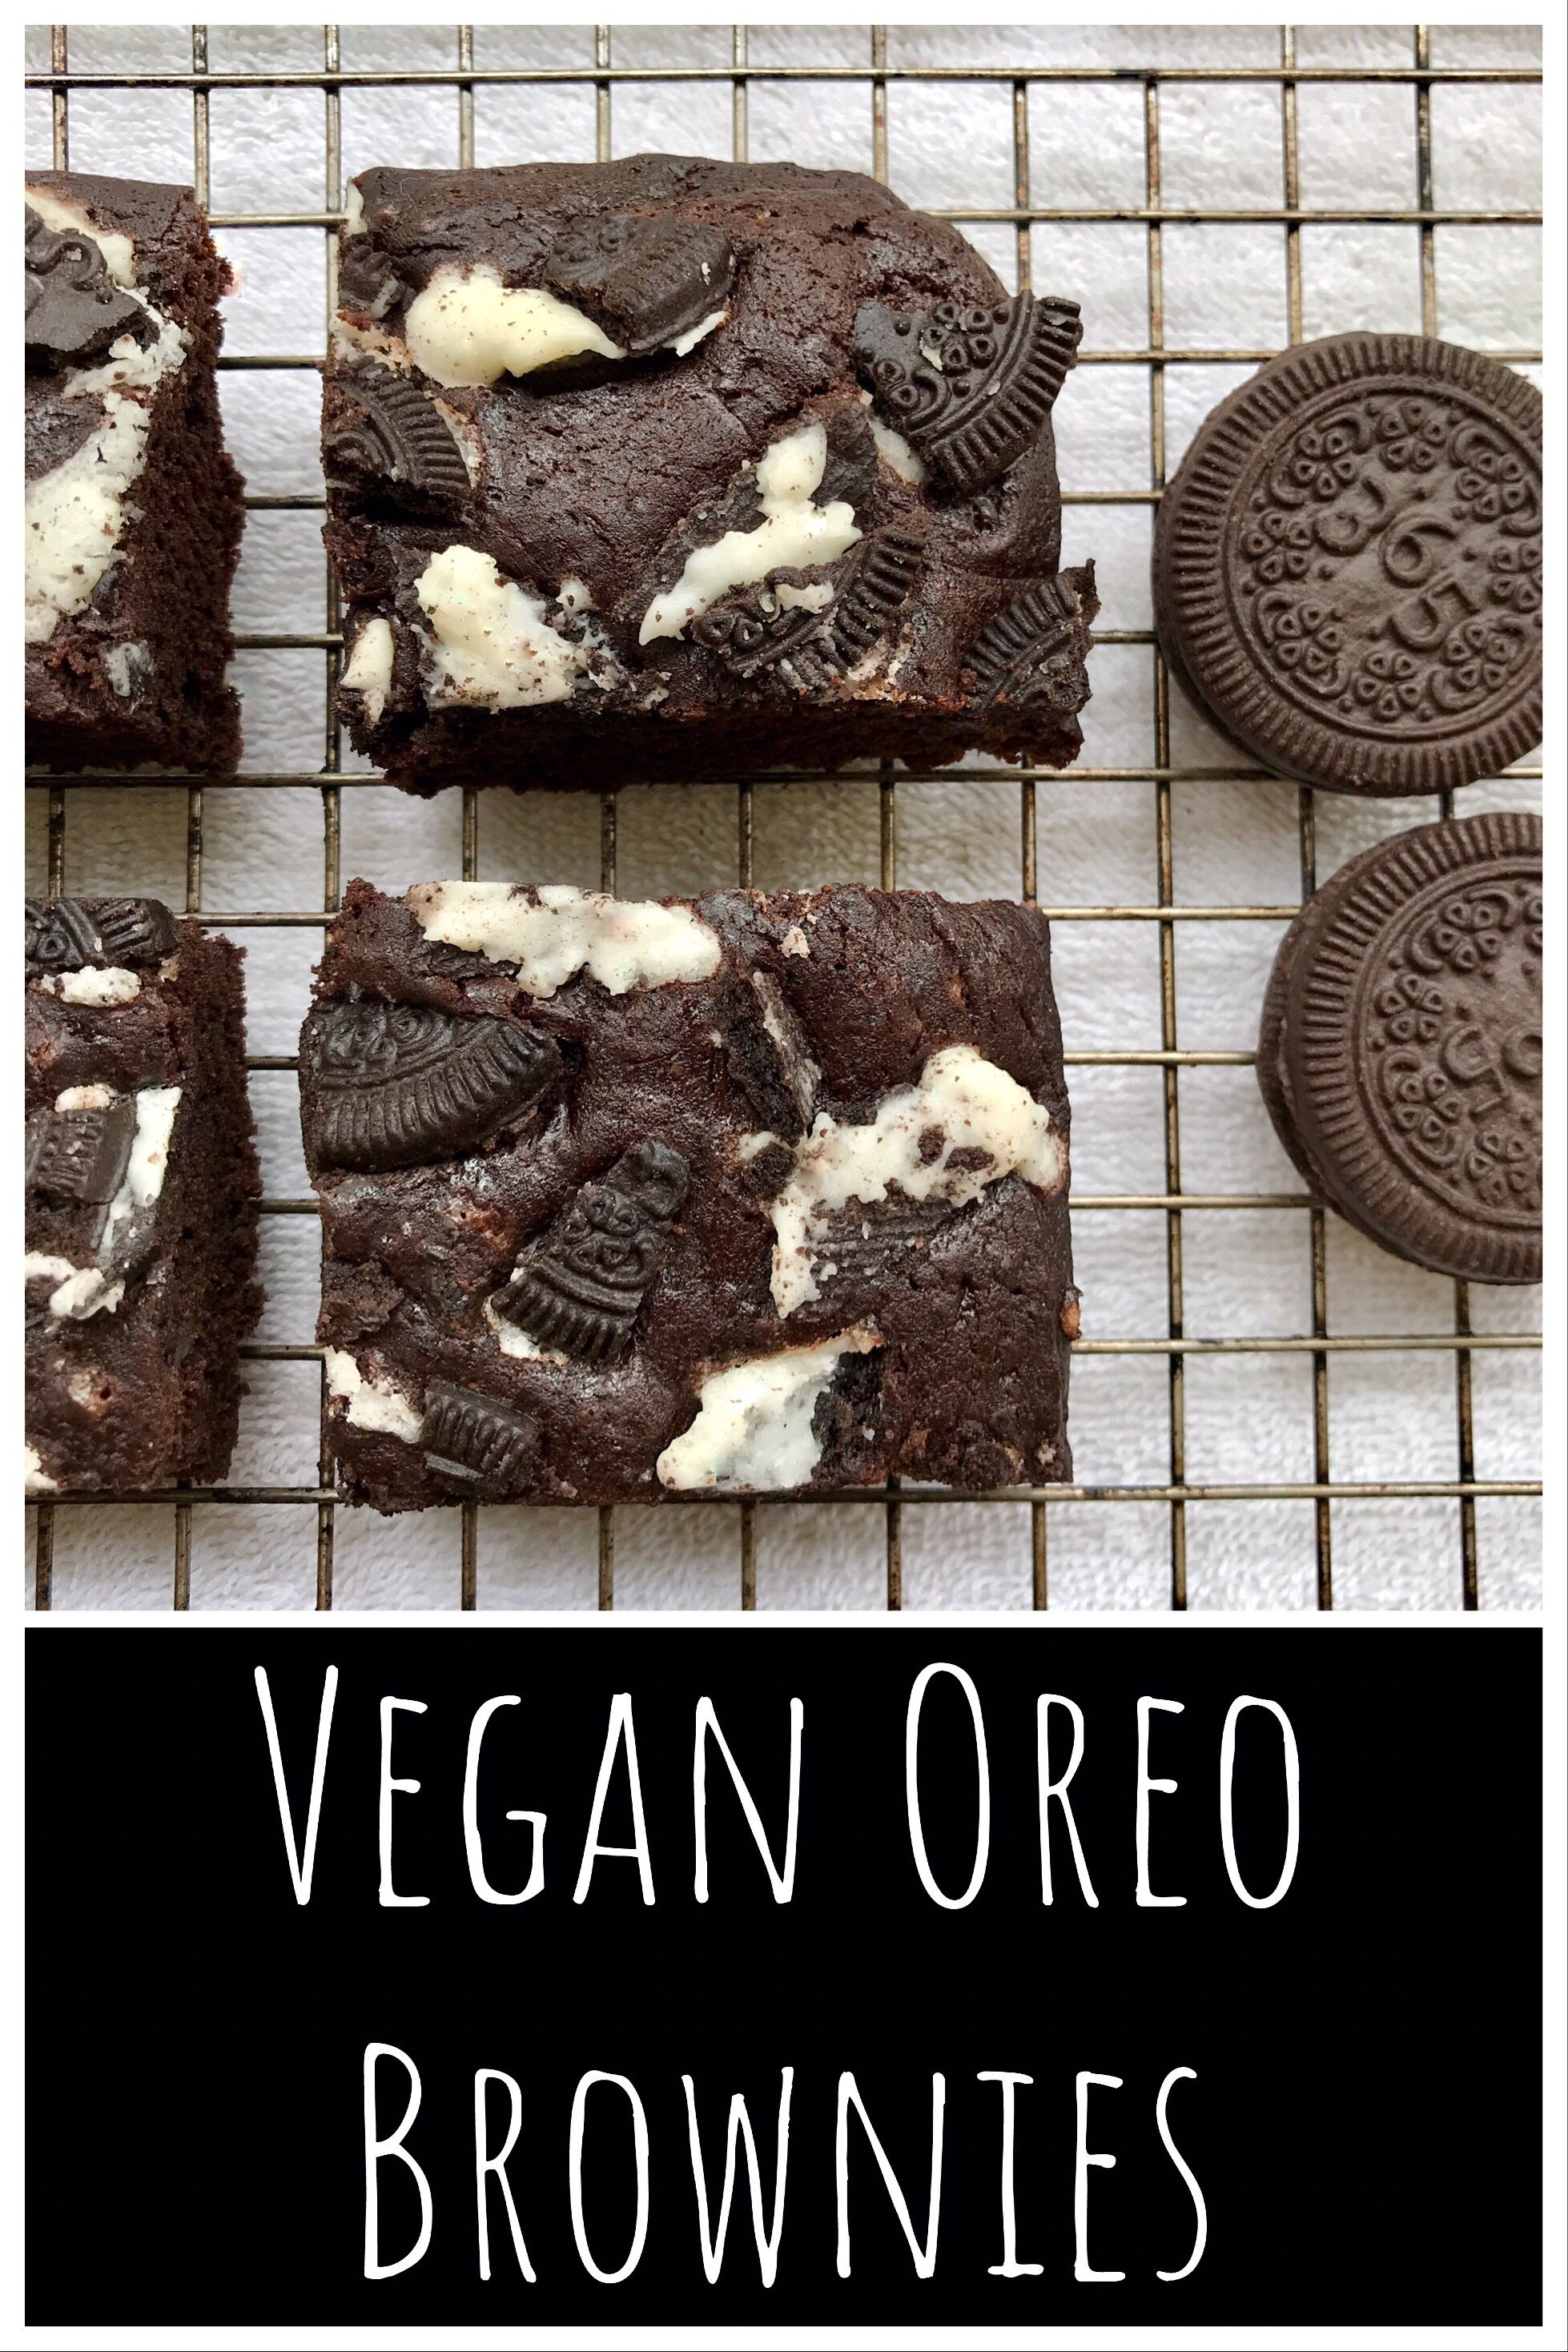 Vegan Oreo Brownies - Food by Ayaka